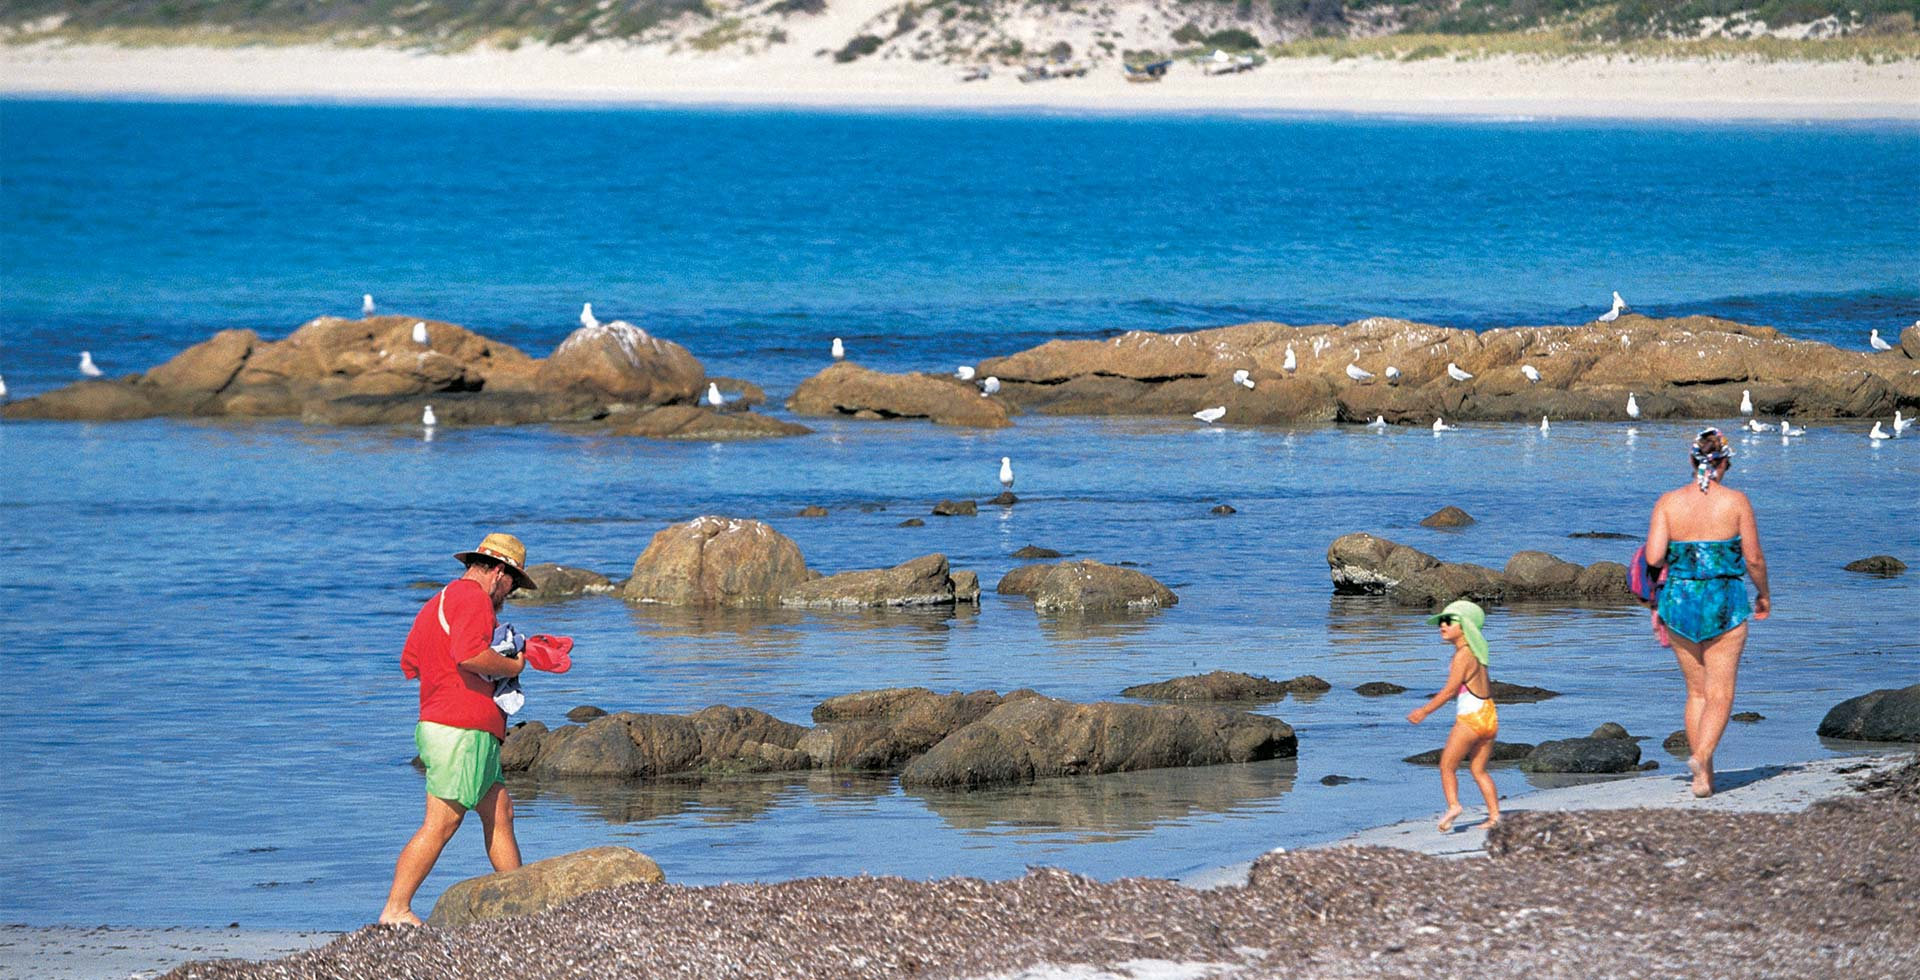 Explore the magnificent Bunker Bay family in Dunsborough